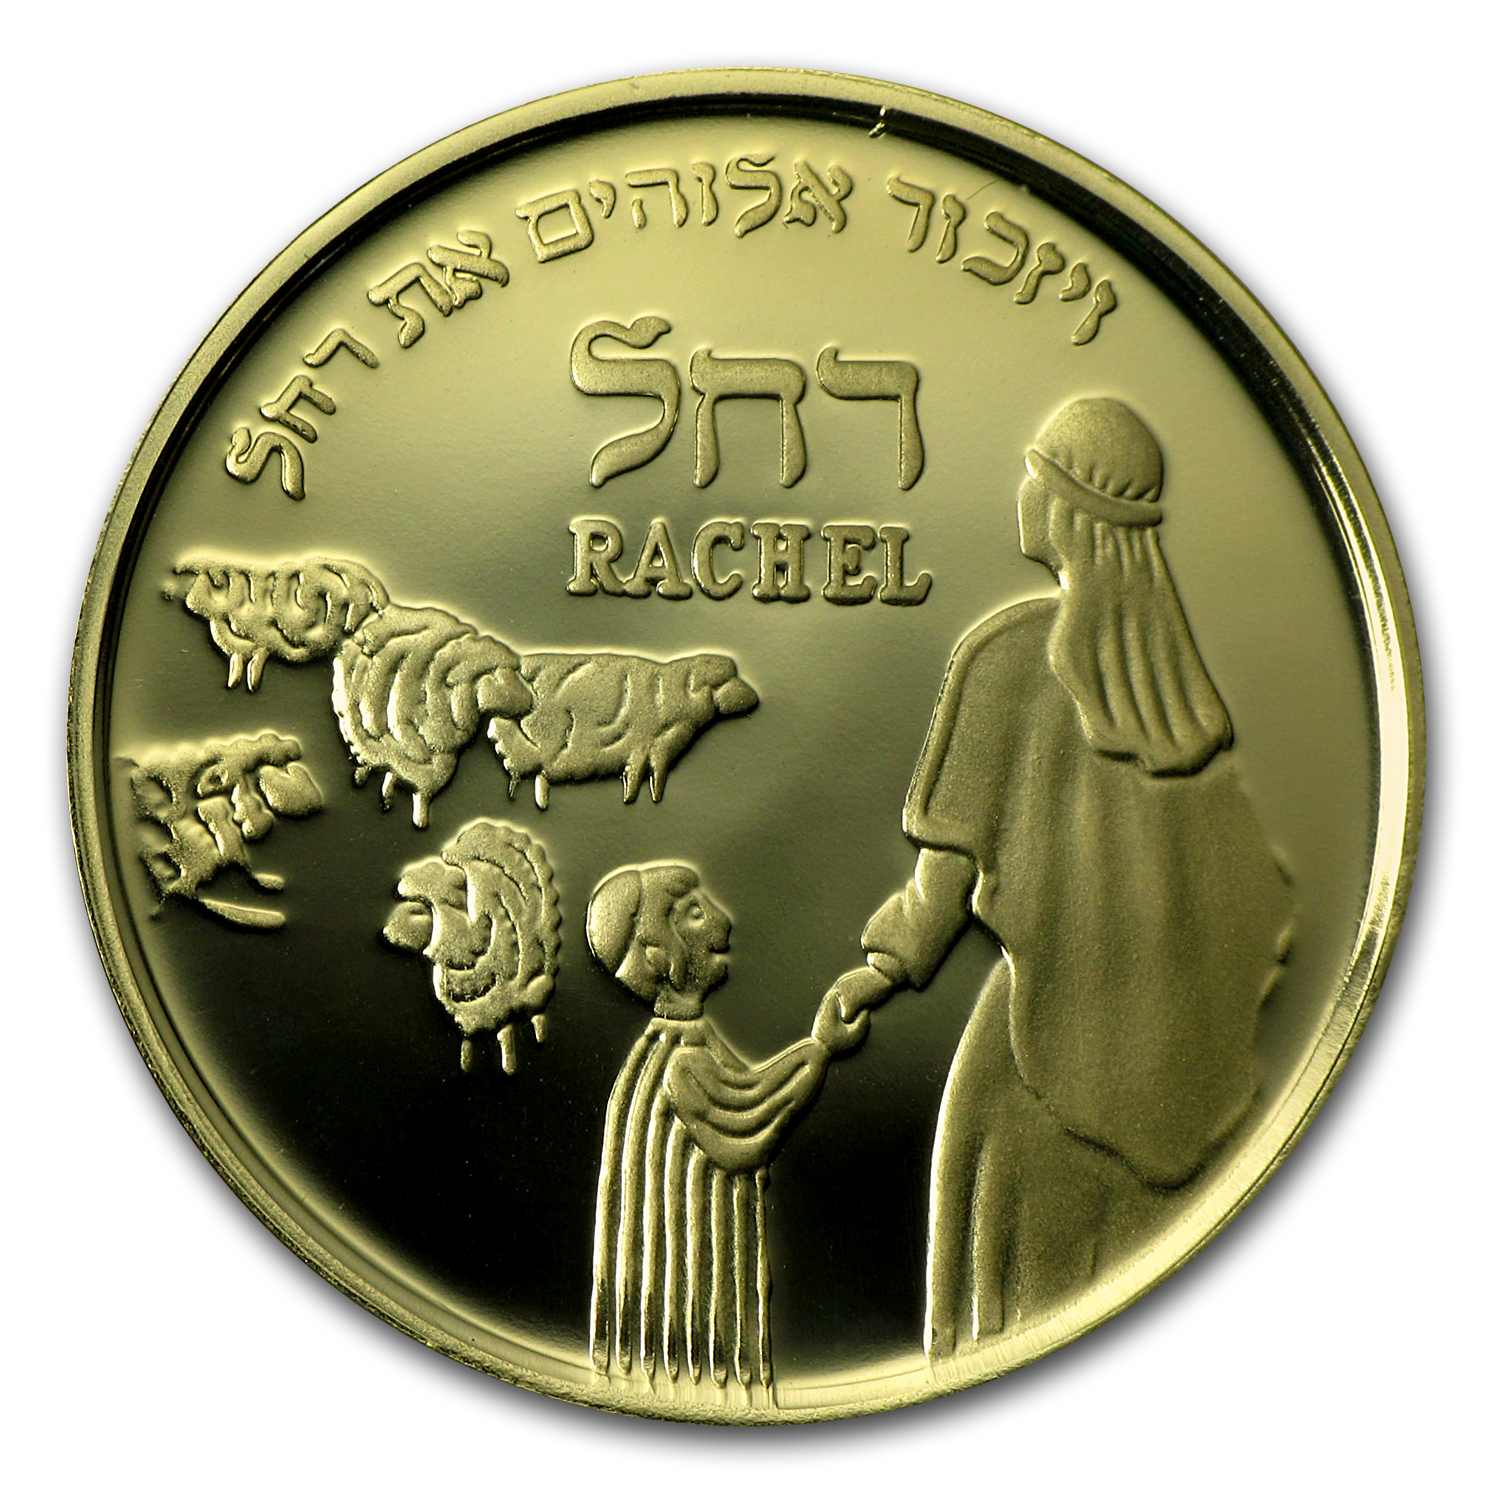 2008 Israel Rachel Proof Gold Medal AGW .32 oz